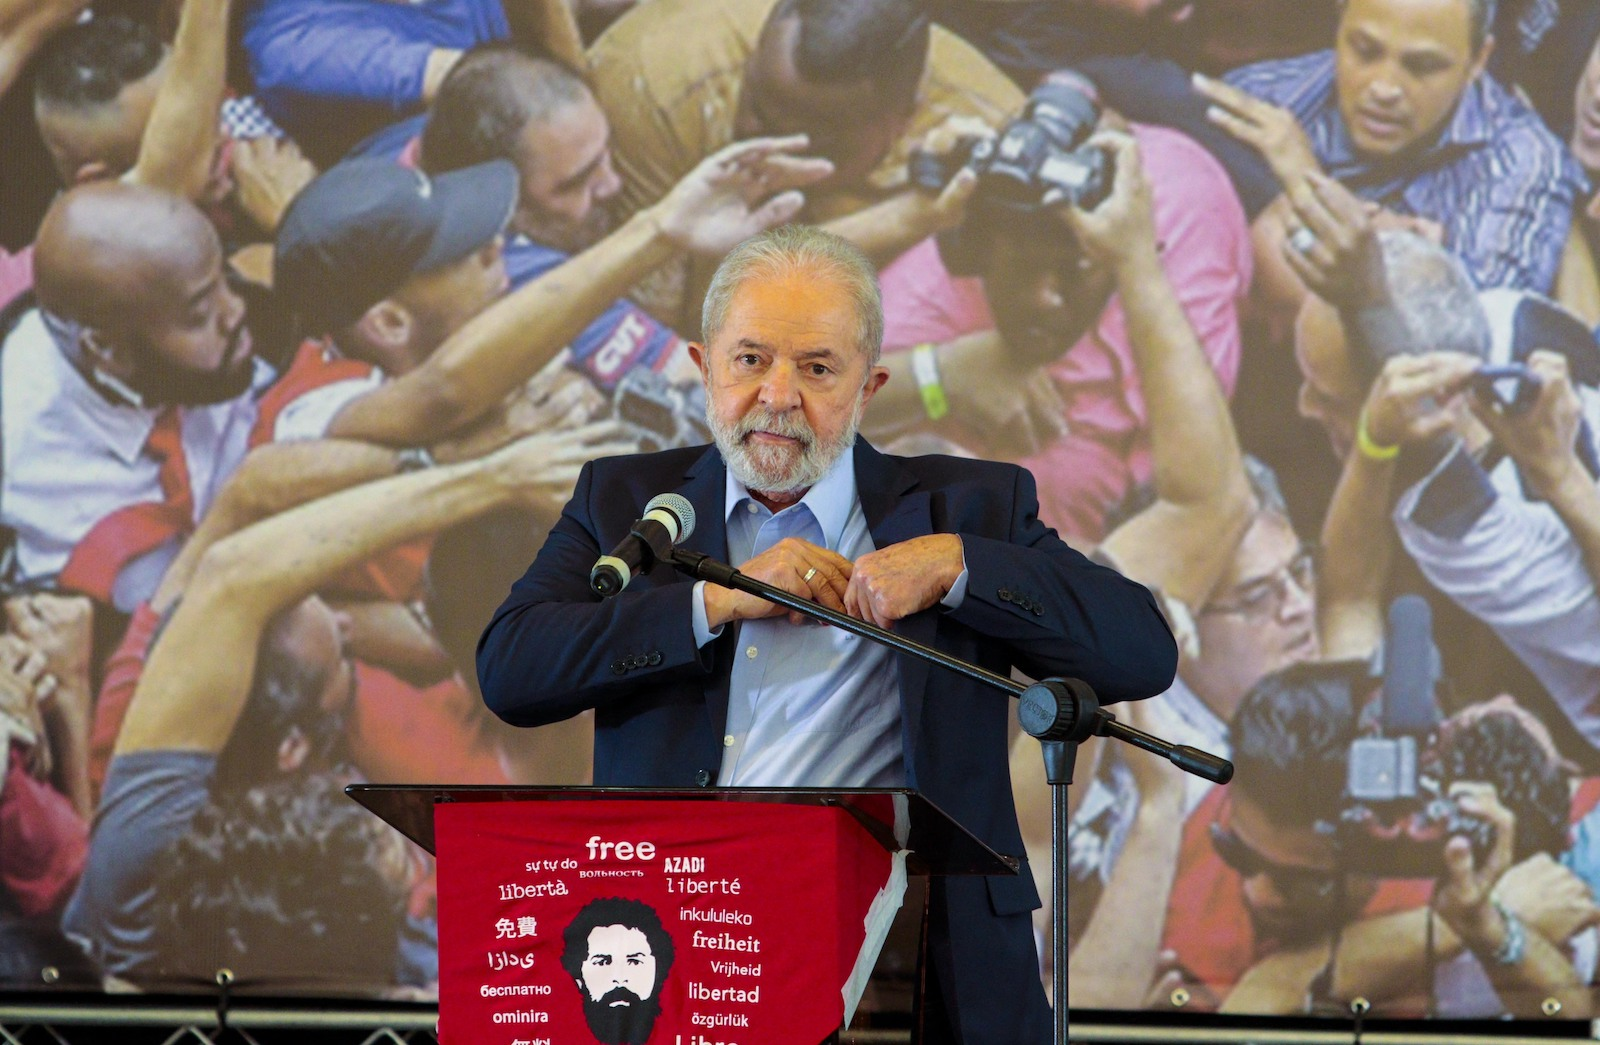 Former Brazilian President Lula da Silva holds a press conference at the metalworkers' union building in Sao Bernardo do Campo, in Sao Paulo, Brazil on March 10. Photo: AFP / Cris Faga / Anadolu Agency